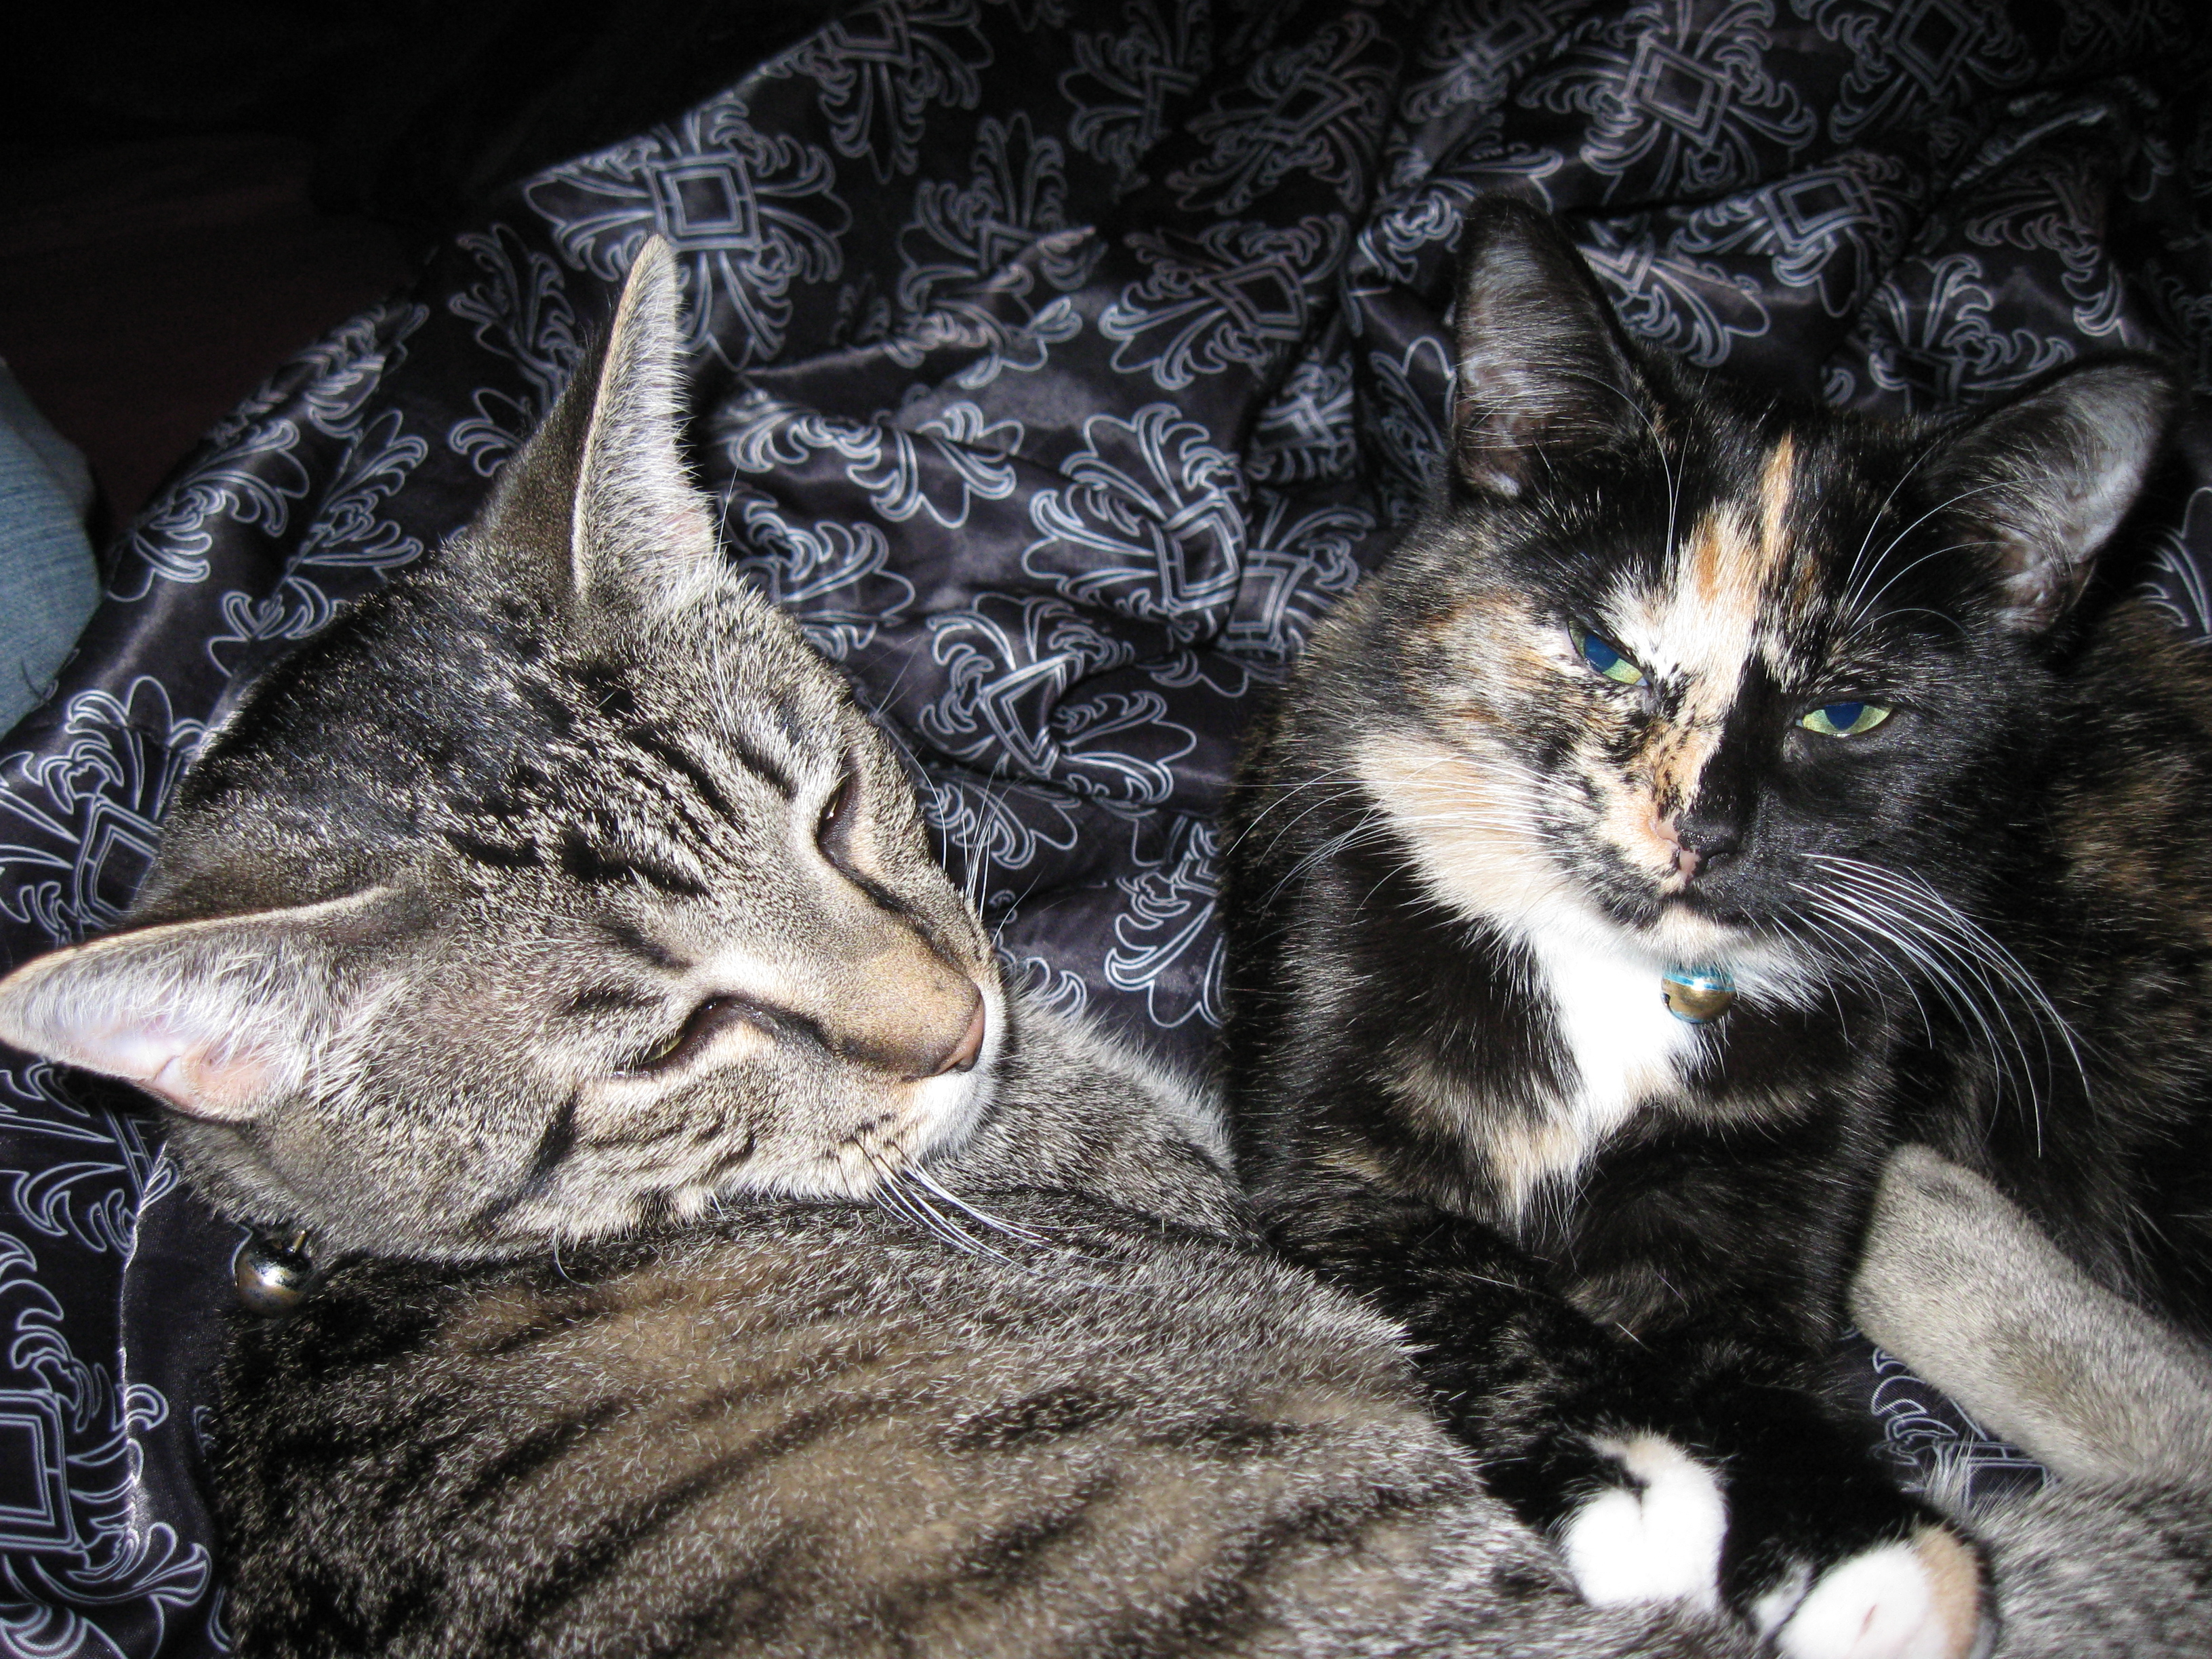 Radar and harlequin lying together 1 photo